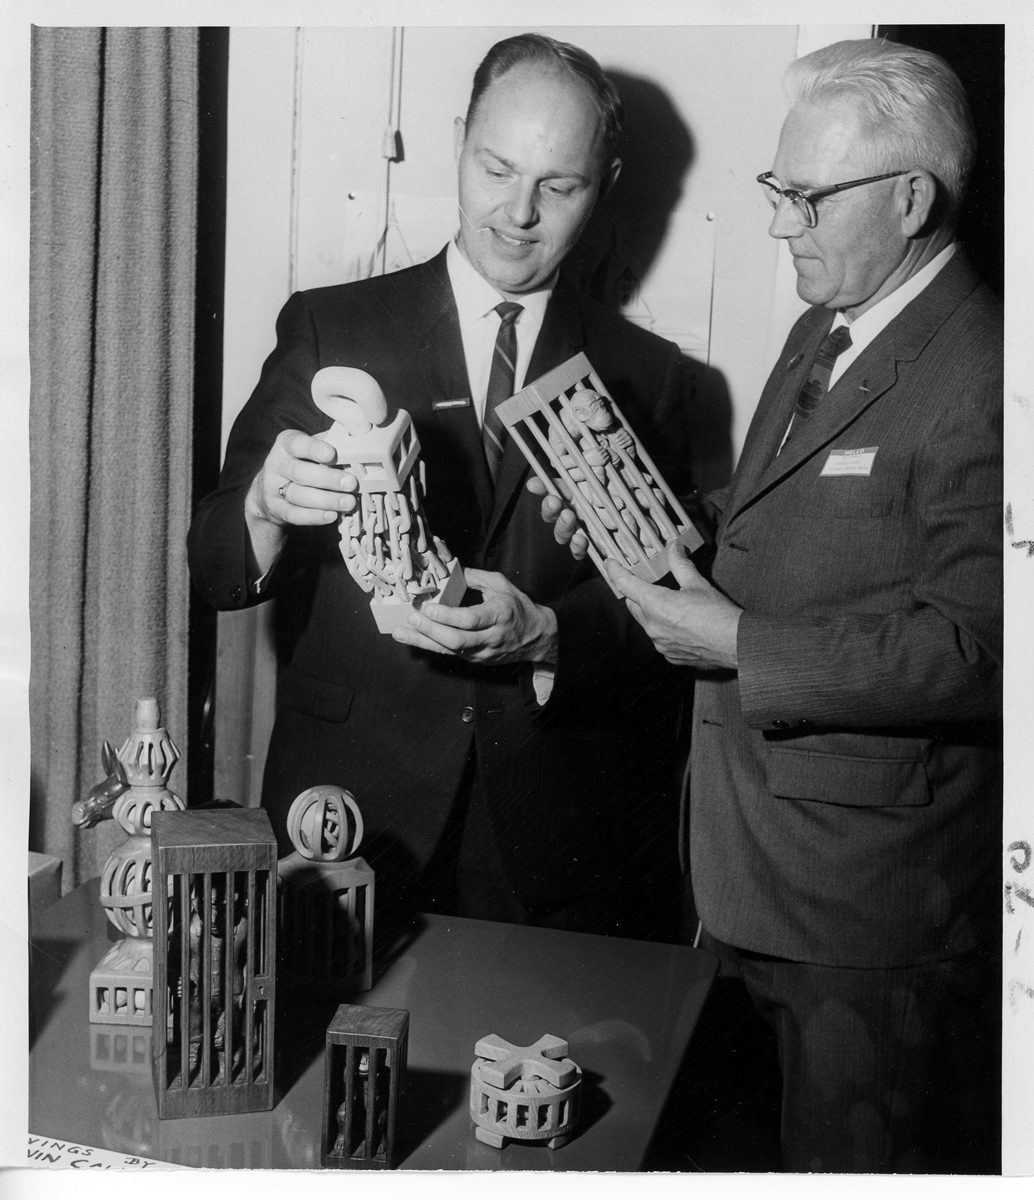 Photograph of Donald M. Fenner and Wendell Gilley at the National Woodcarvers Association Meeting, Herkimer, N.Y., May 1967.